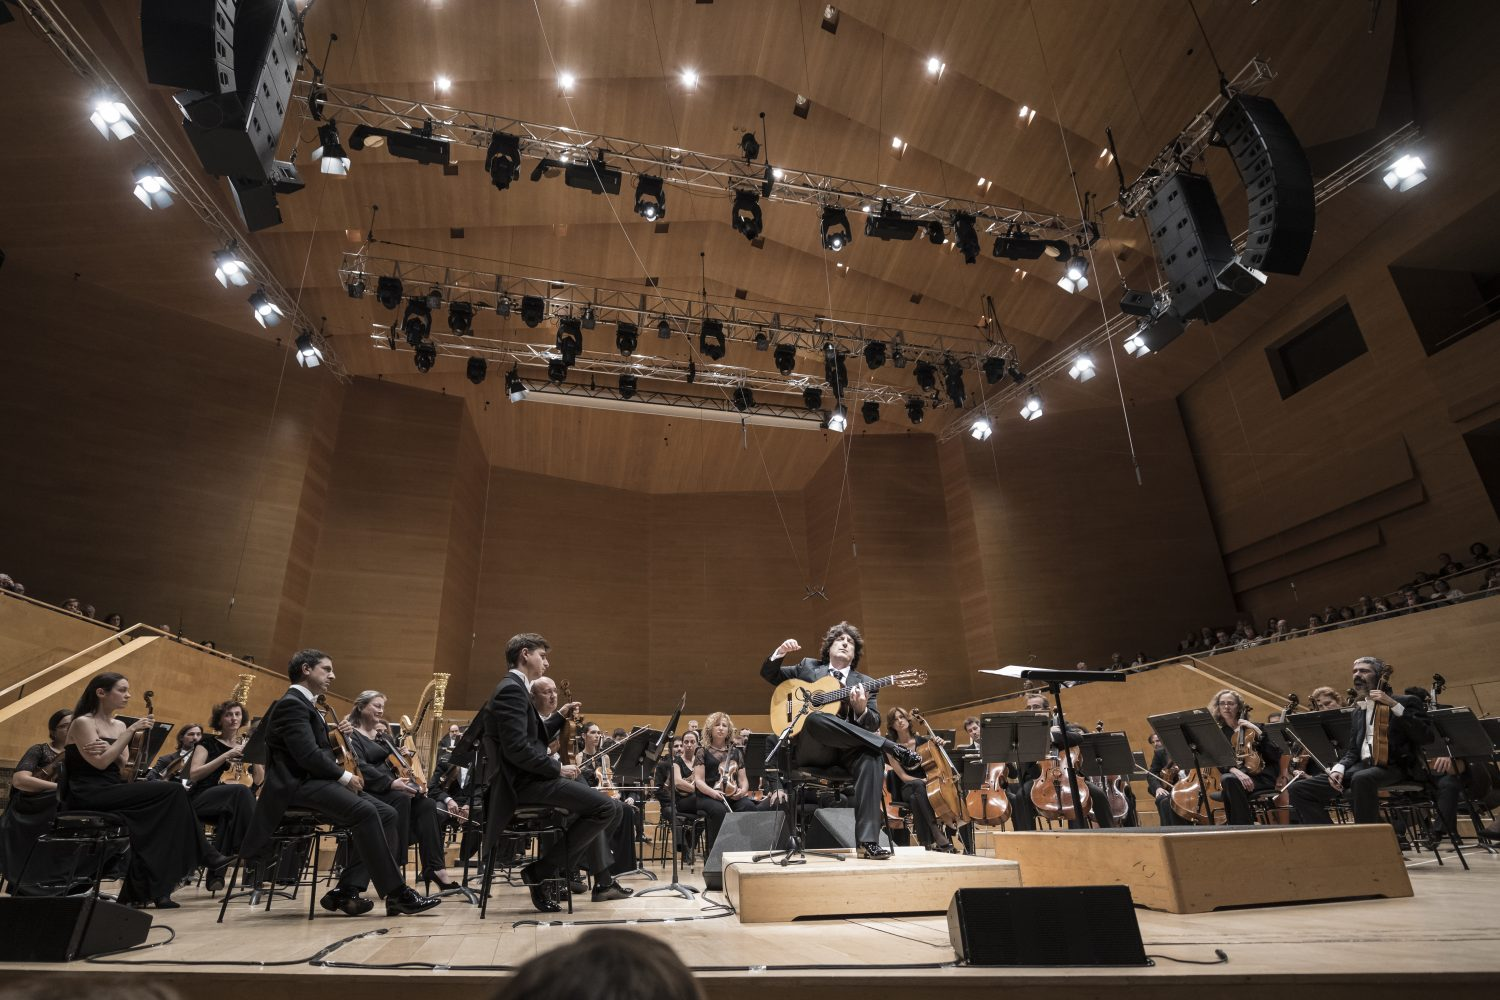 Cañizares & The OBC Orchestra